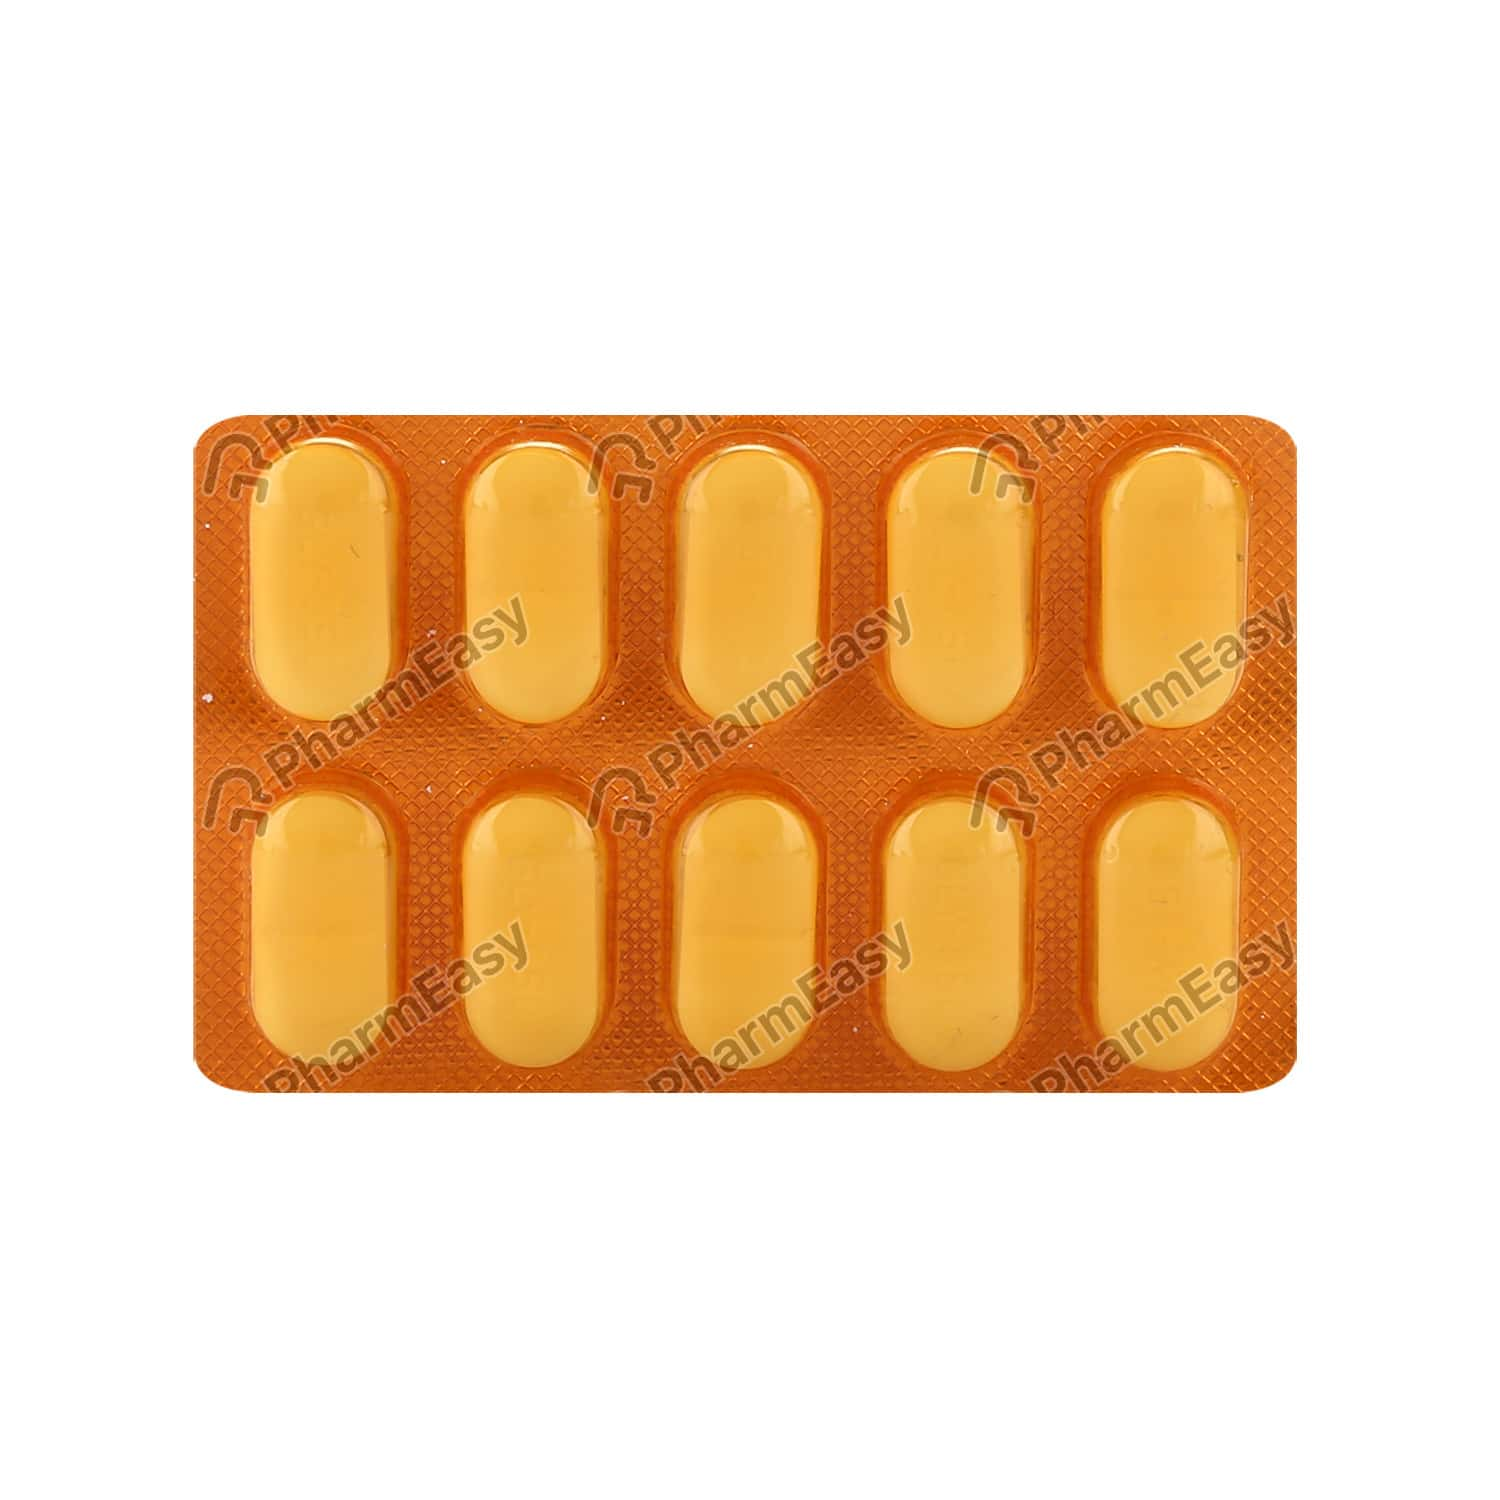 Glyciphage 850mg Tablet